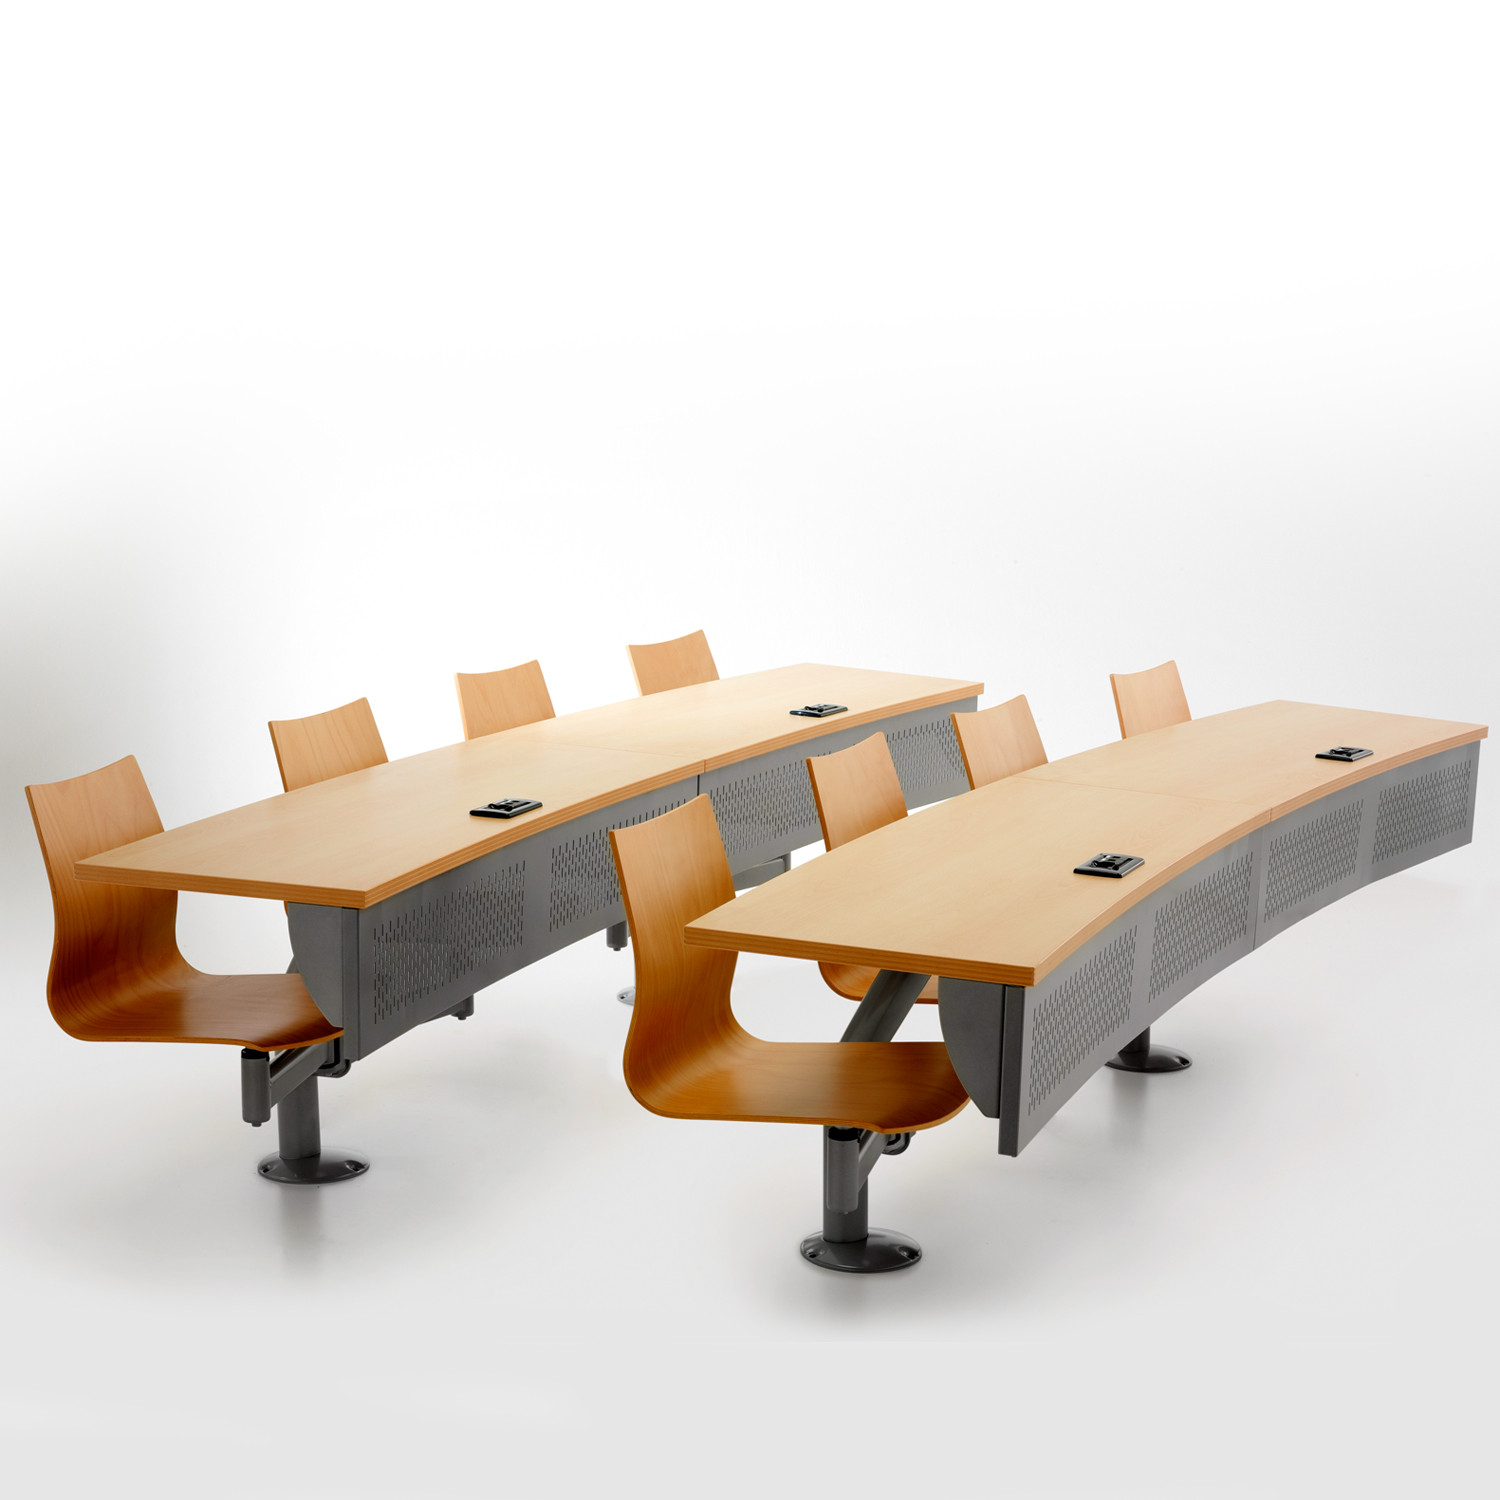 Thesi Lecture Seating